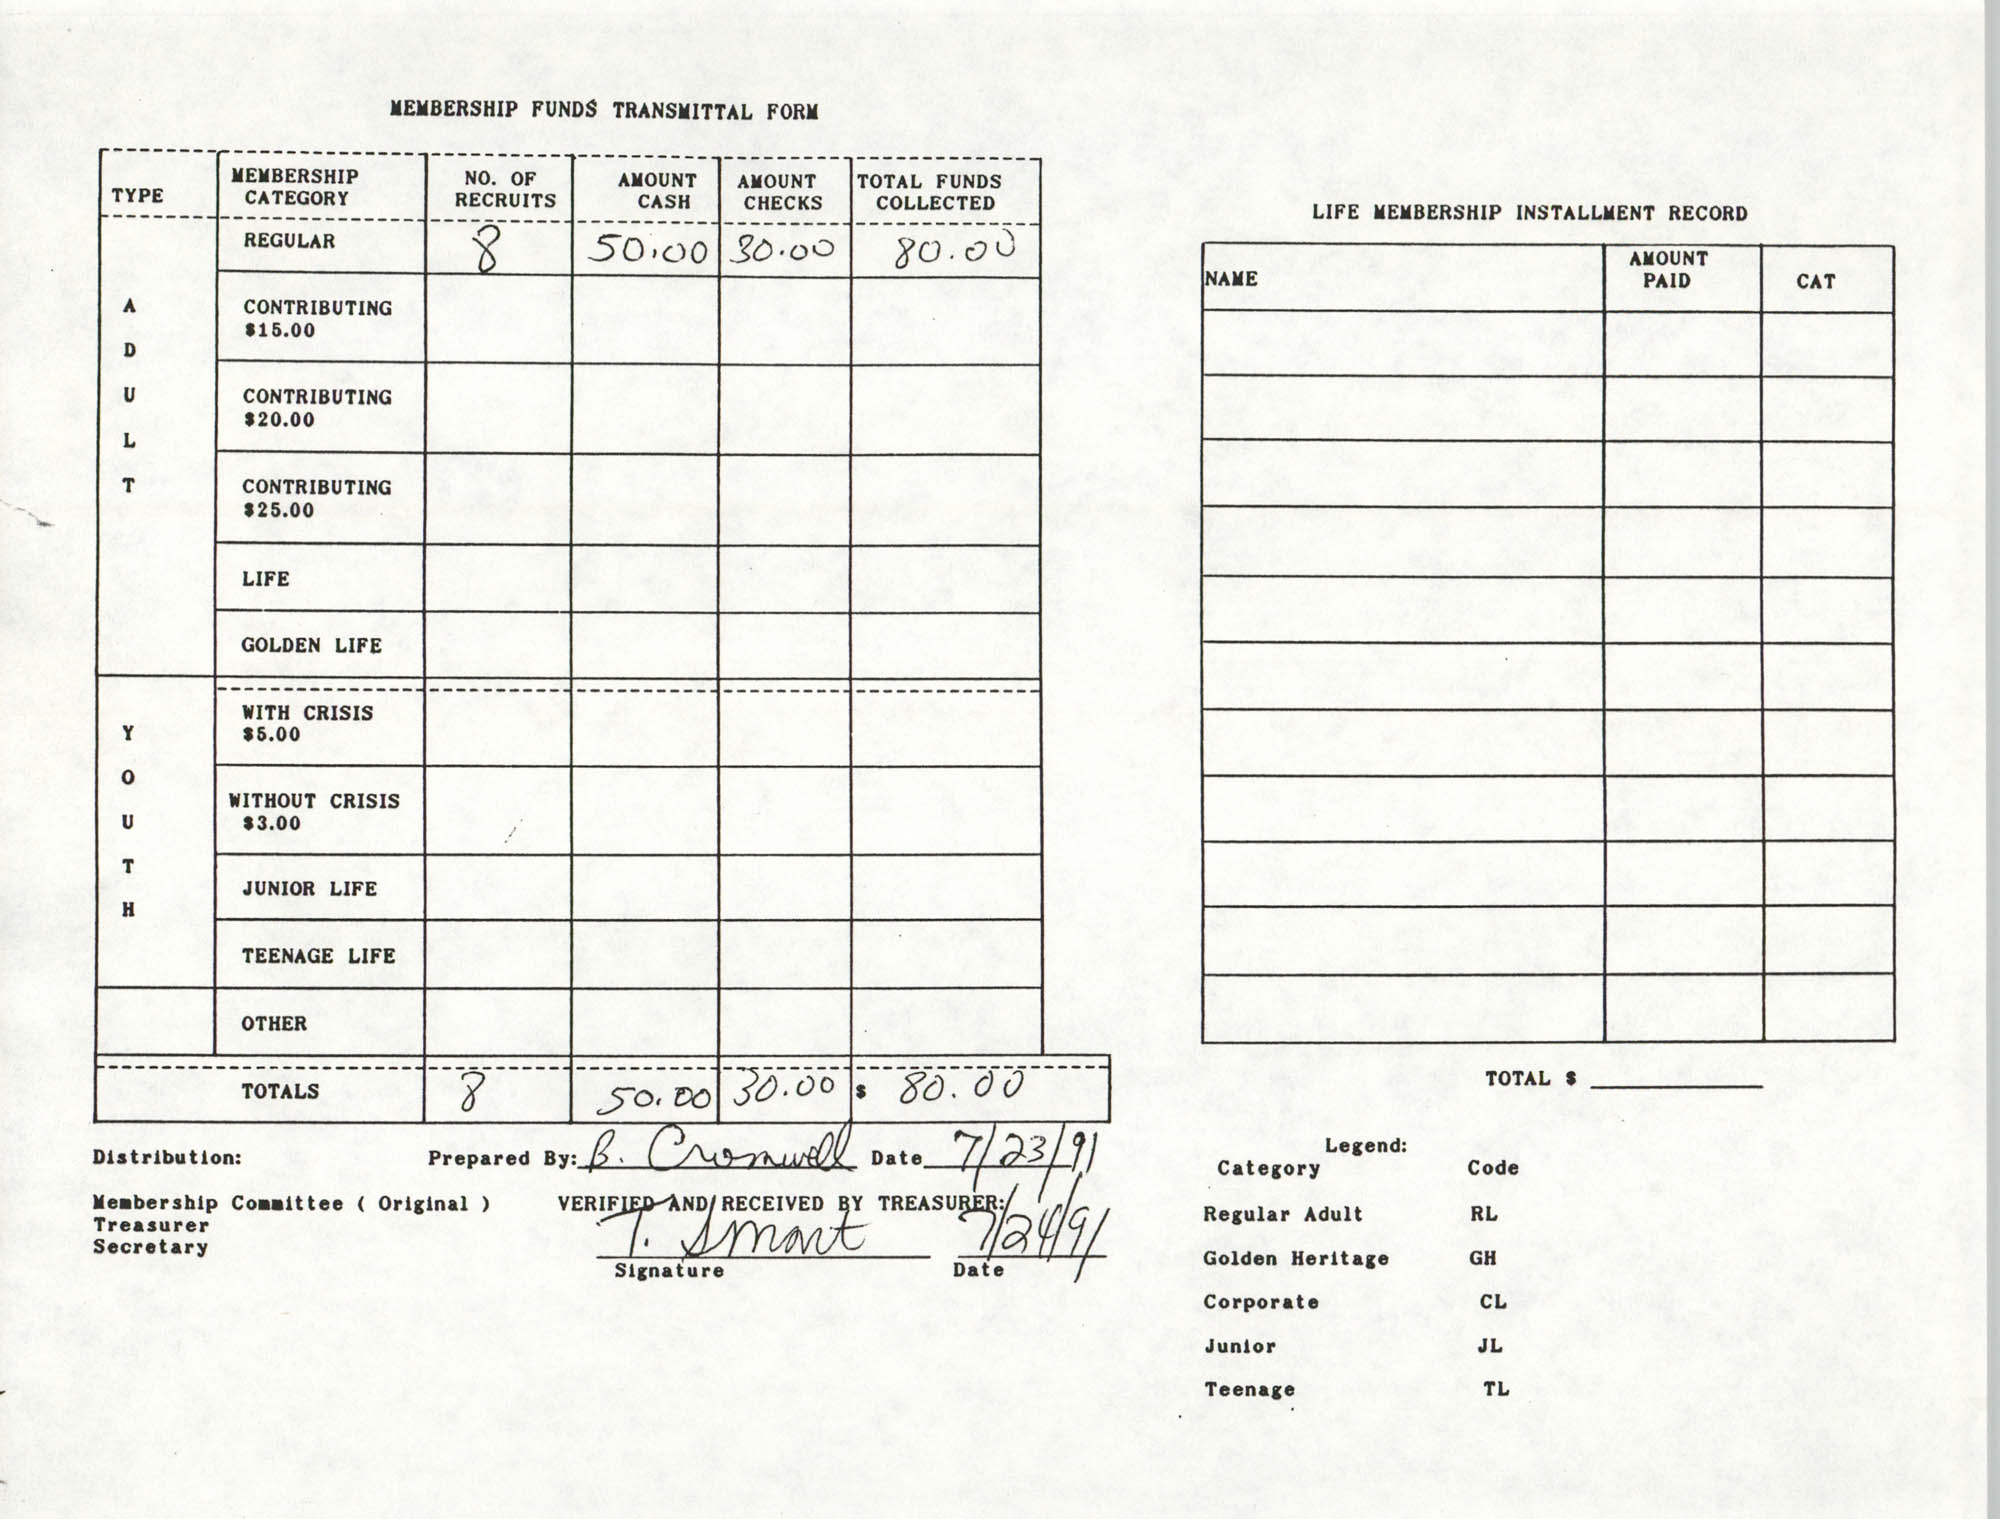 Charleston Branch of the NAACP Funds Transmittal Forms, July 1991, Page 7